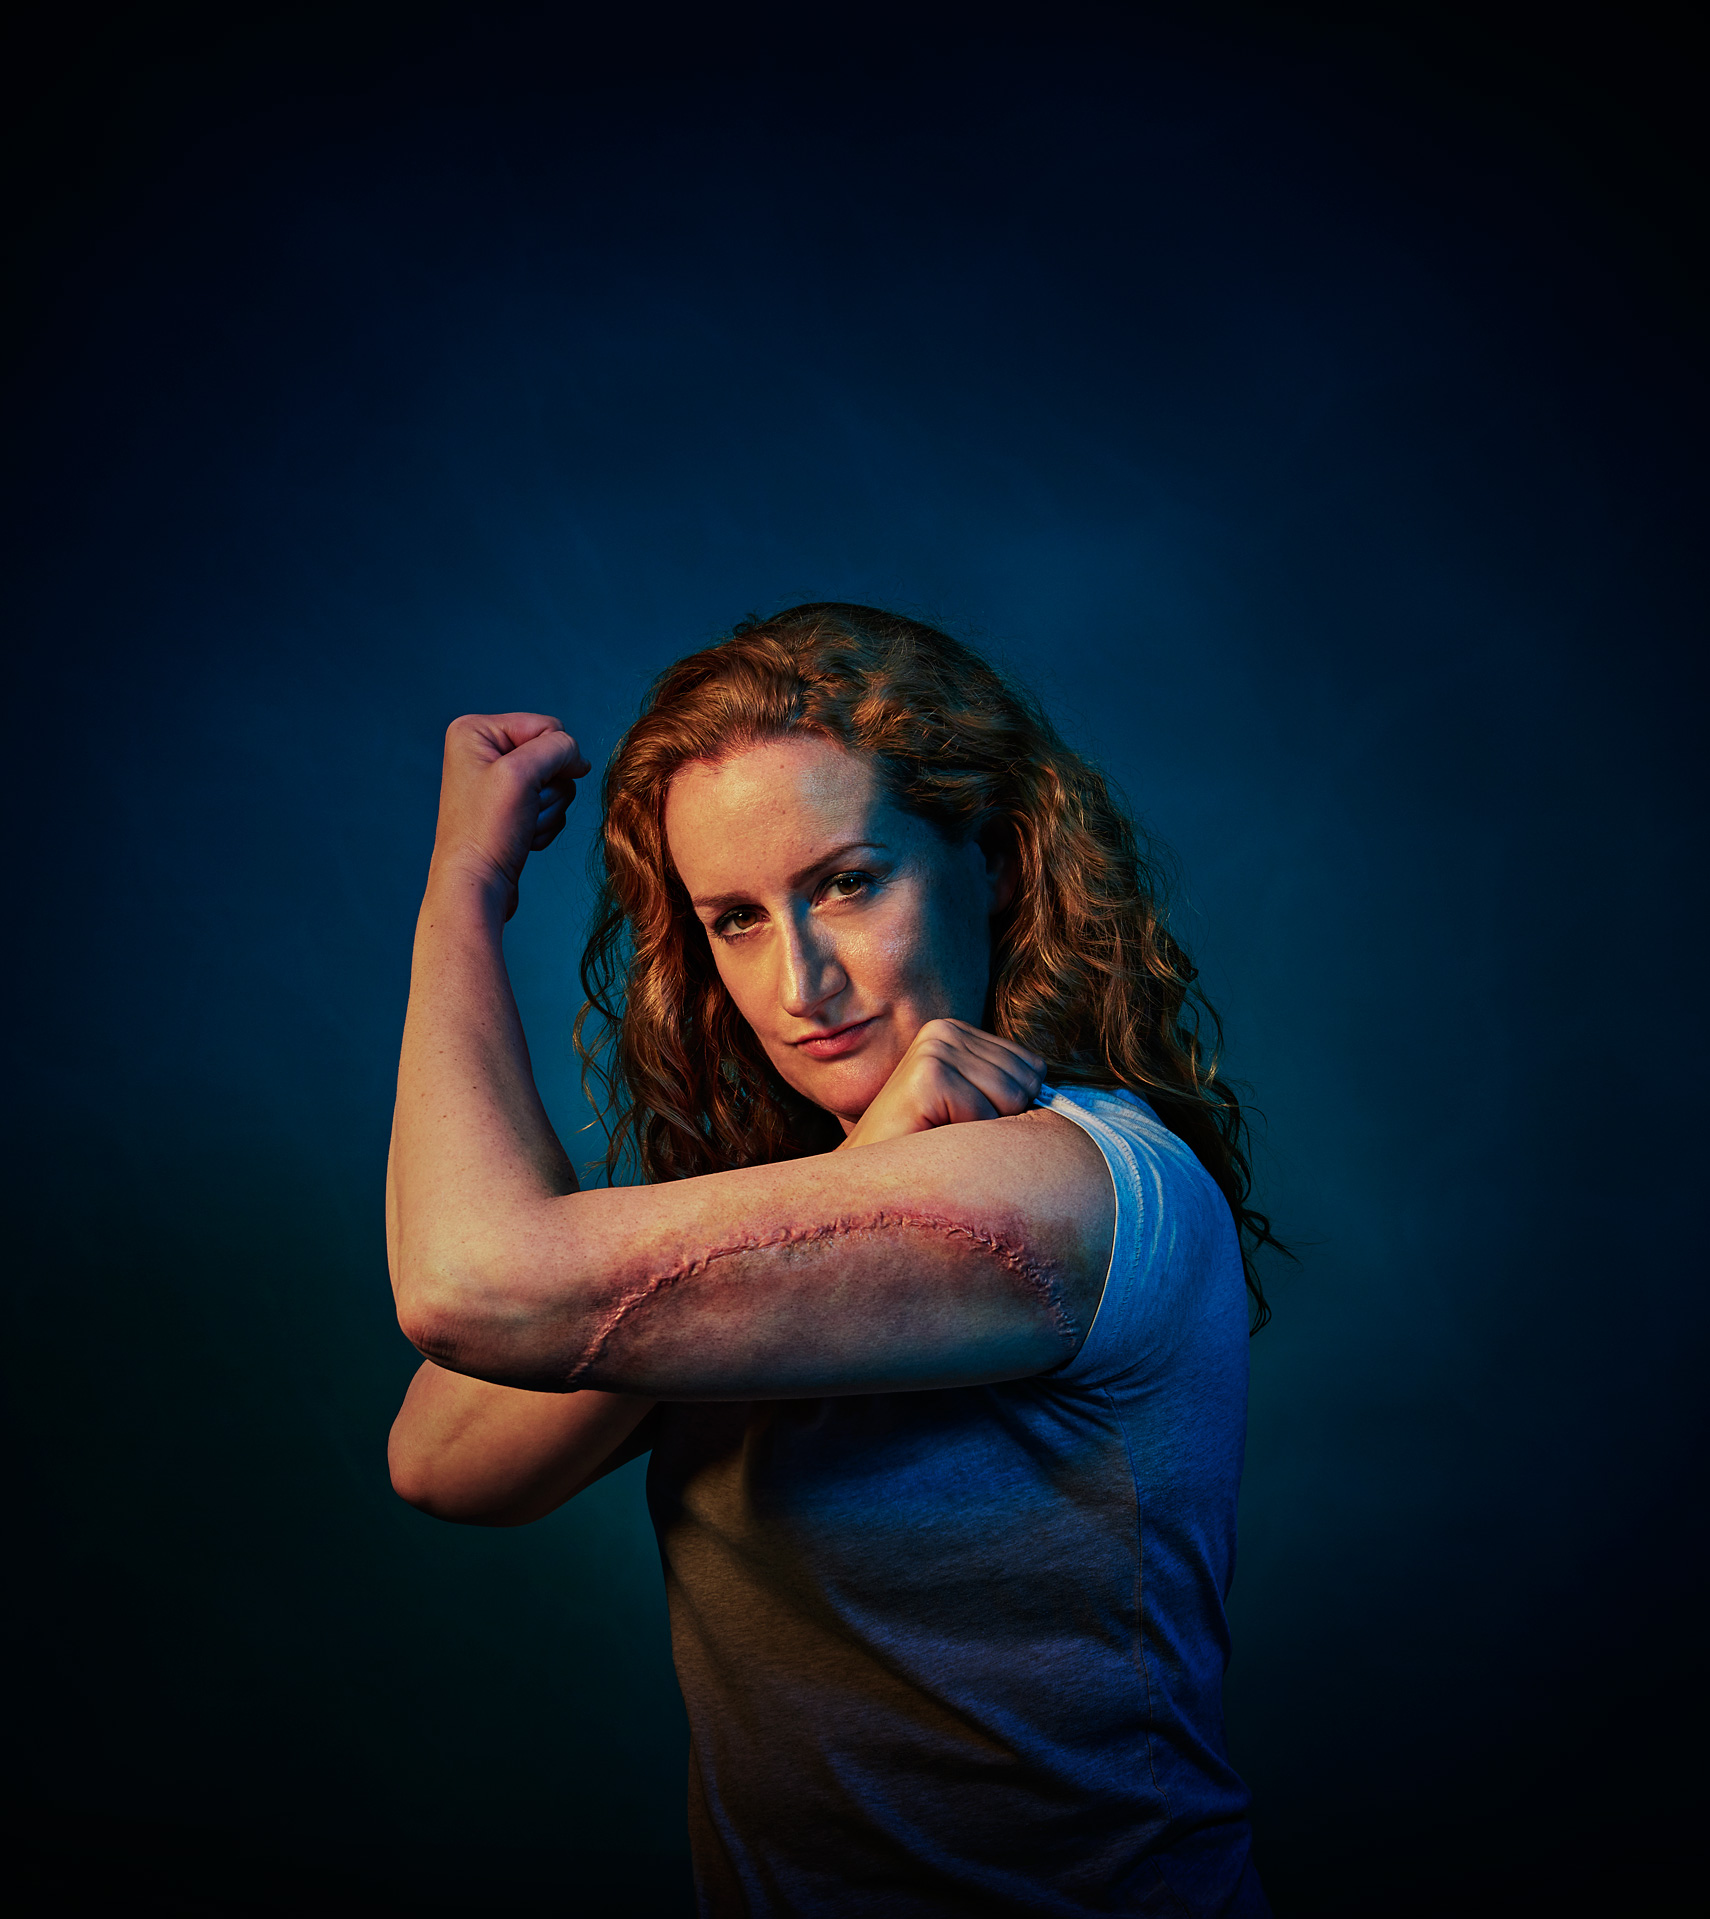 lady with red hair flexes her bicep and shows shark attack